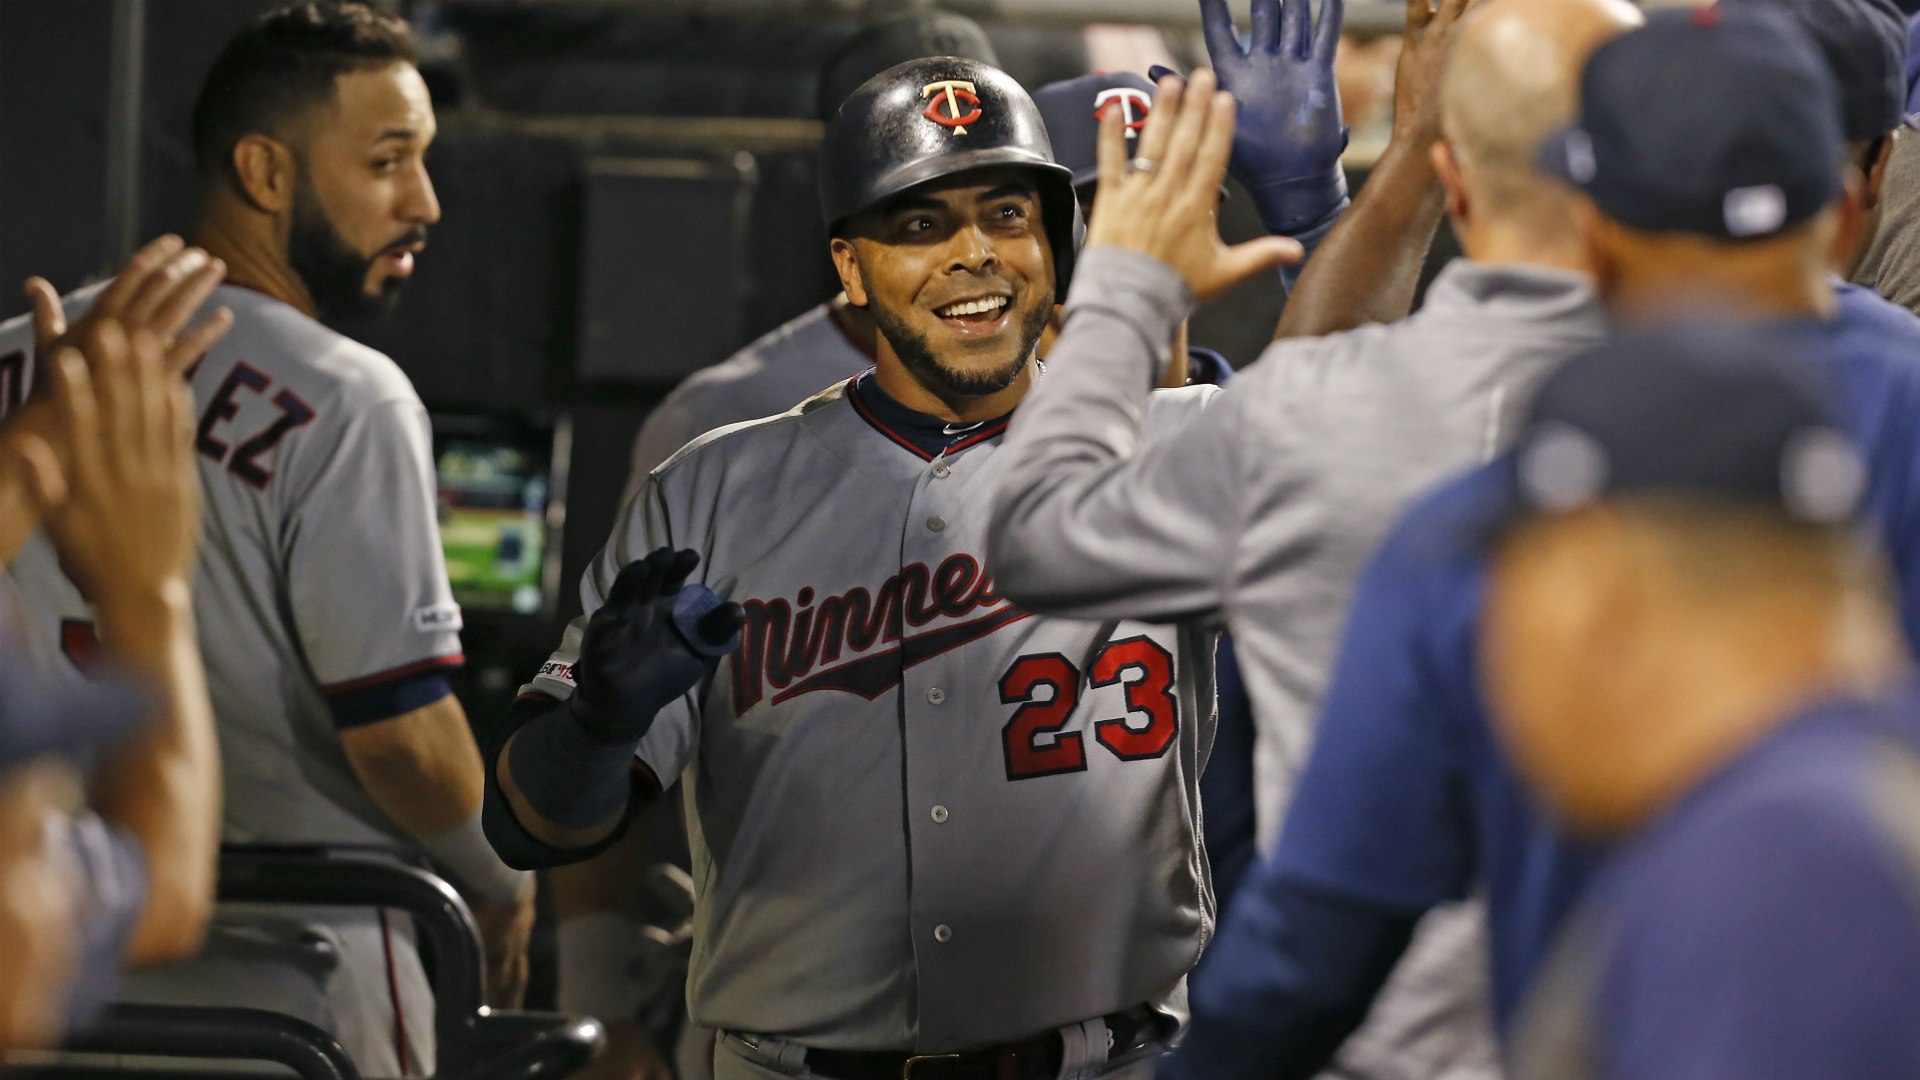 Cruz, 39, hit 41 homers and slashed .311/.392/.639 with 108 RBIs at the relatively bargain-basement price of $14 million in 2019.